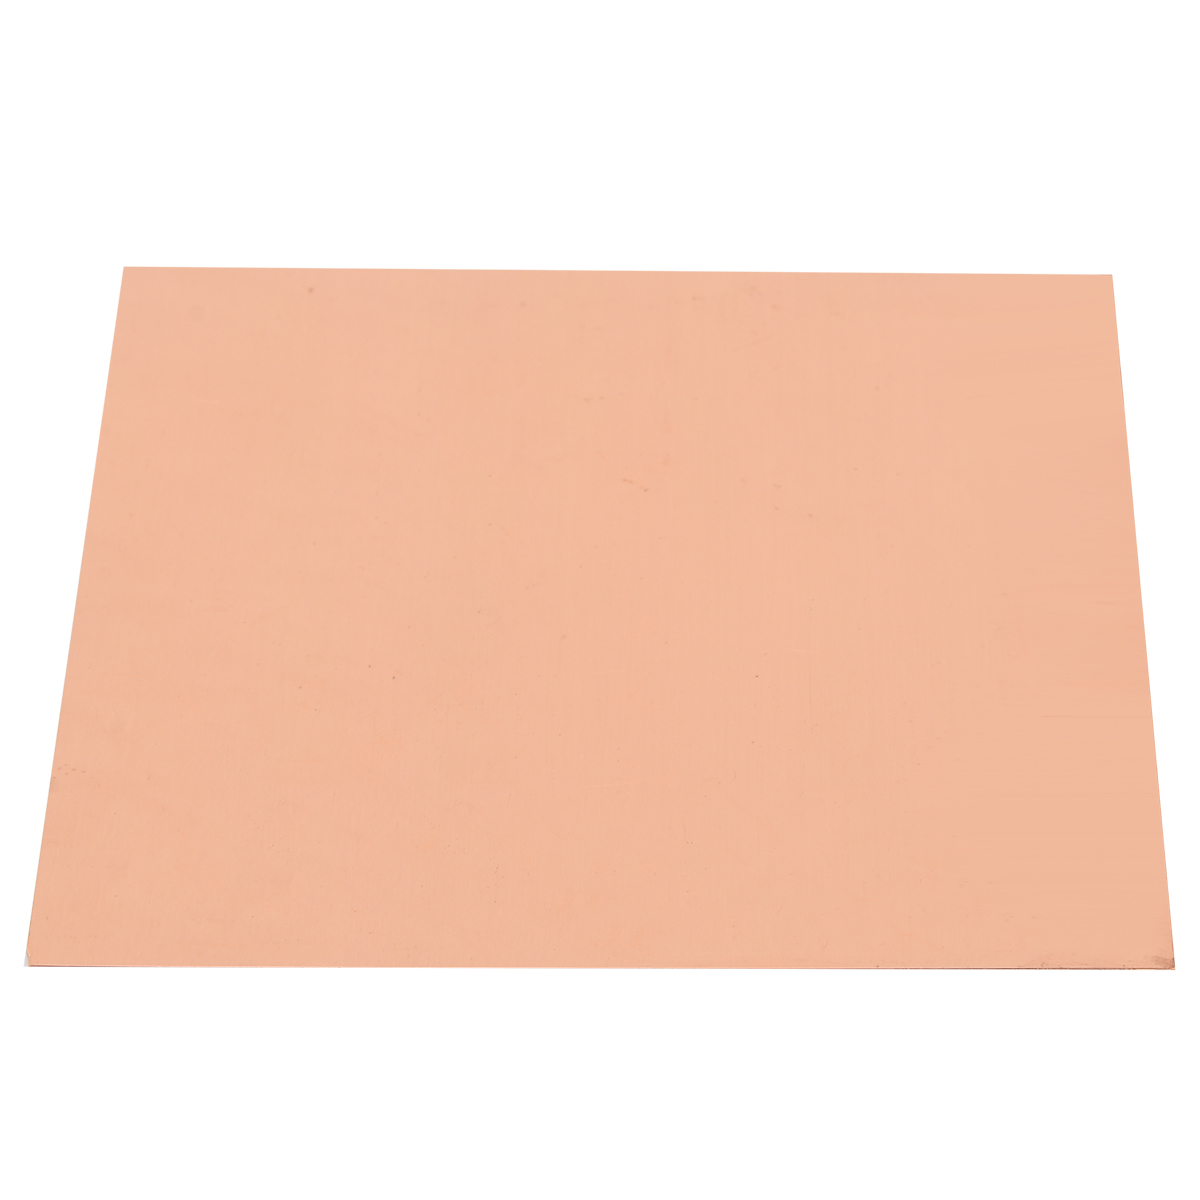 99.9% High Purity Copper Sheet Cu Metal Flat Foil 0.2mm Thickness Pure Copper Plate For Welding And Brazing 100*100mm